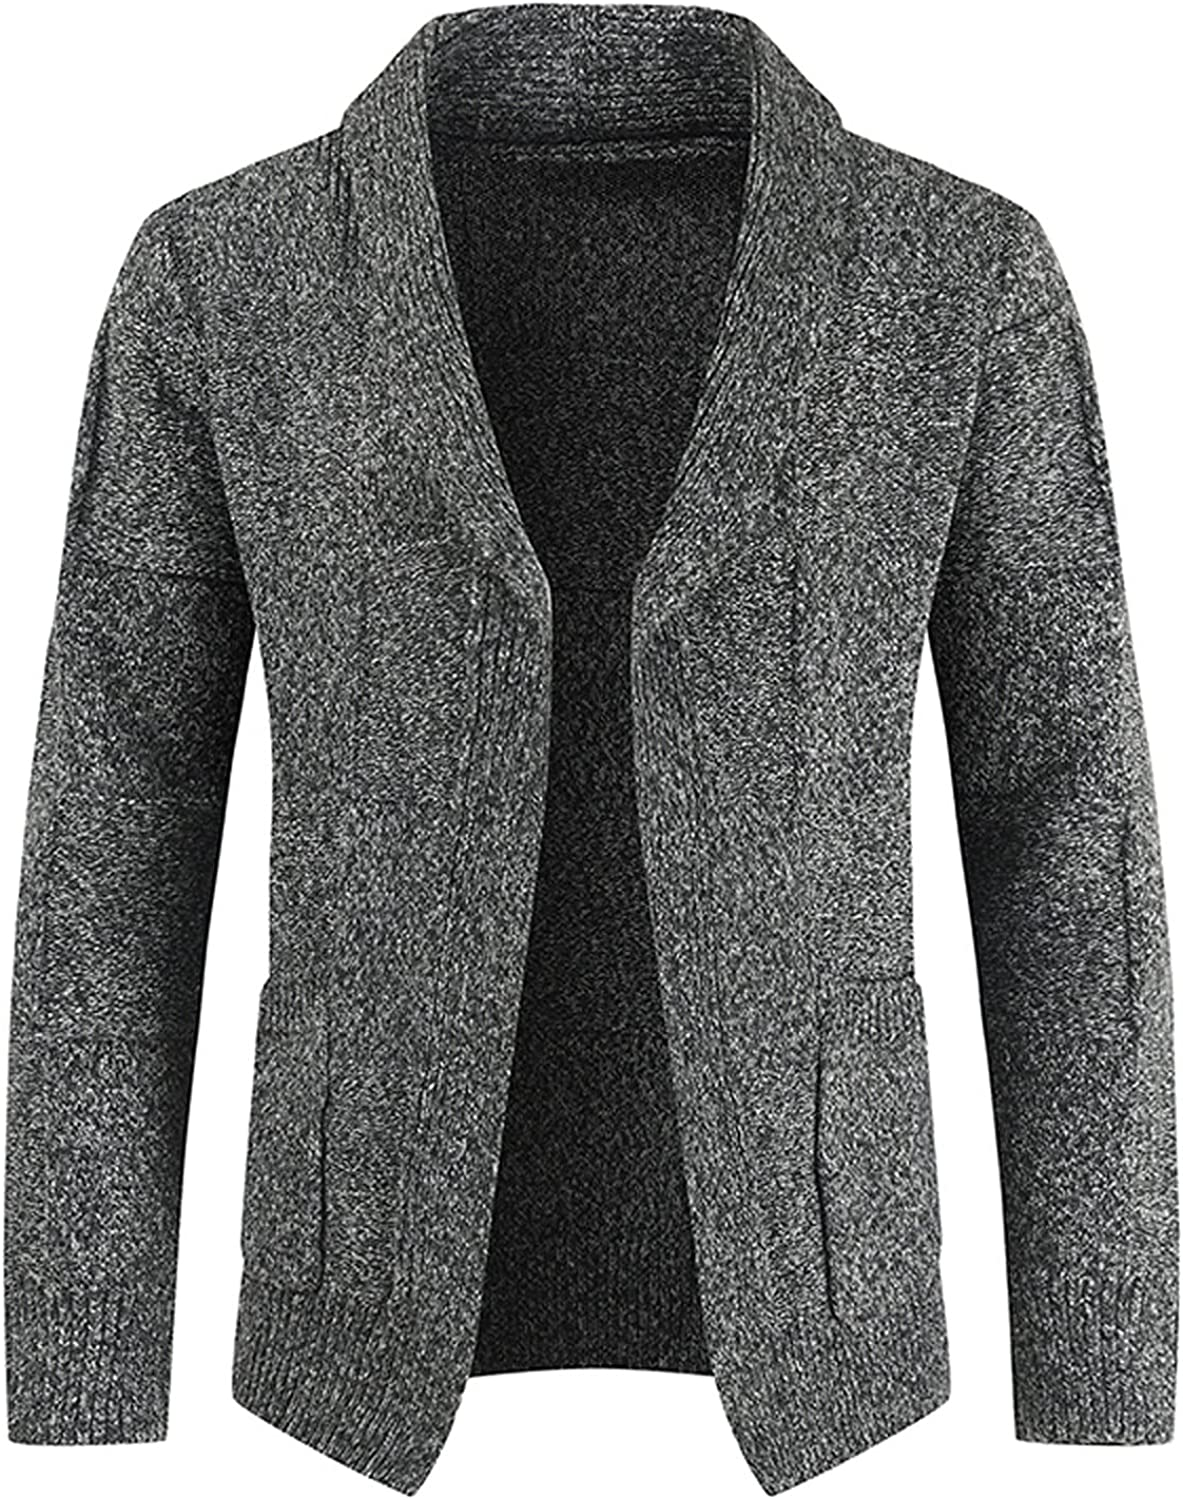 Huangse Mens Knitted V Neck Cardigans Slim Fit Open Front Sweaters Solid Color Long Sleeve Casual Knit Wool Blend Cardigan